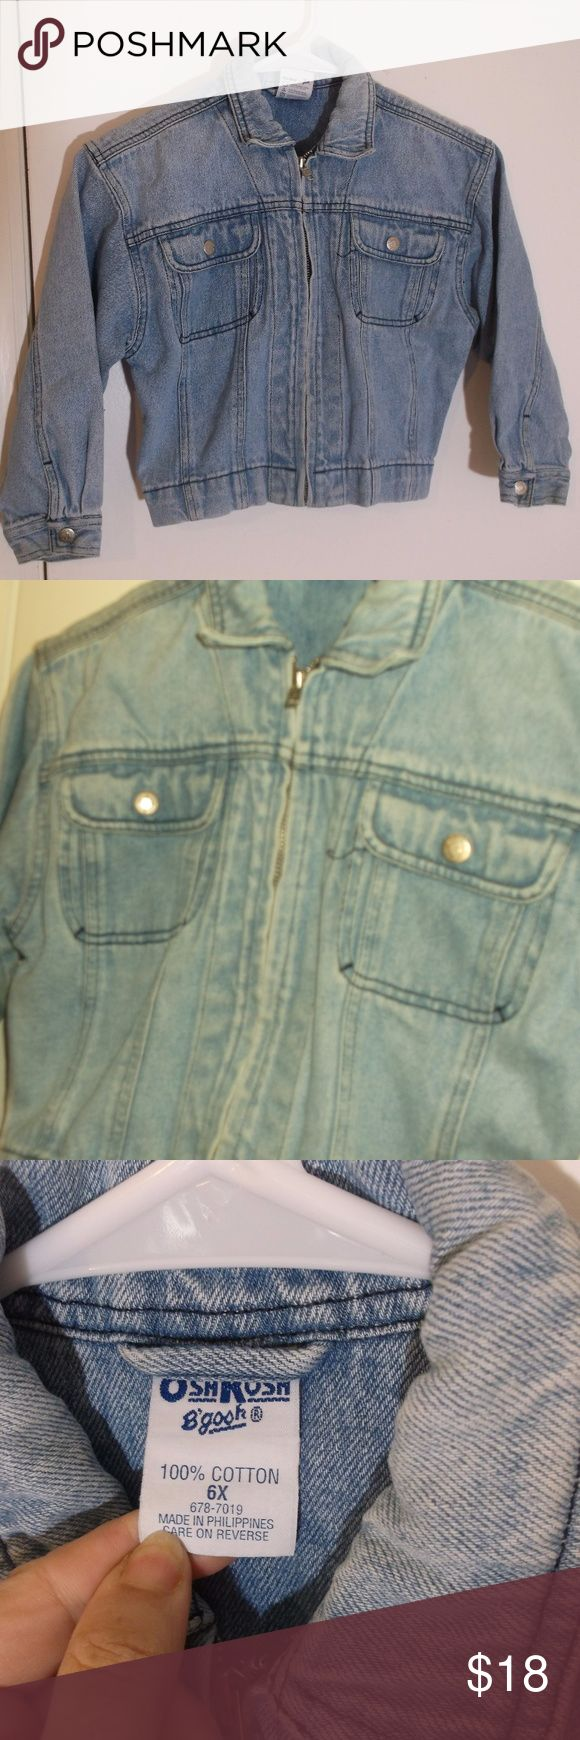 OshKosh Blue Jean Denim Jacket Girls 6X This is a little girls denim jean jacket by Osh Kosh in a size 6X 100% cotton Long sleeves, collar Zipper down front 2 snapped pockets on chest, snaps at cuffs, adjustable snaps at waist Light stonewash blue in color In excellent used condition OshKosh B'gosh Jackets & Coats Jean Jackets